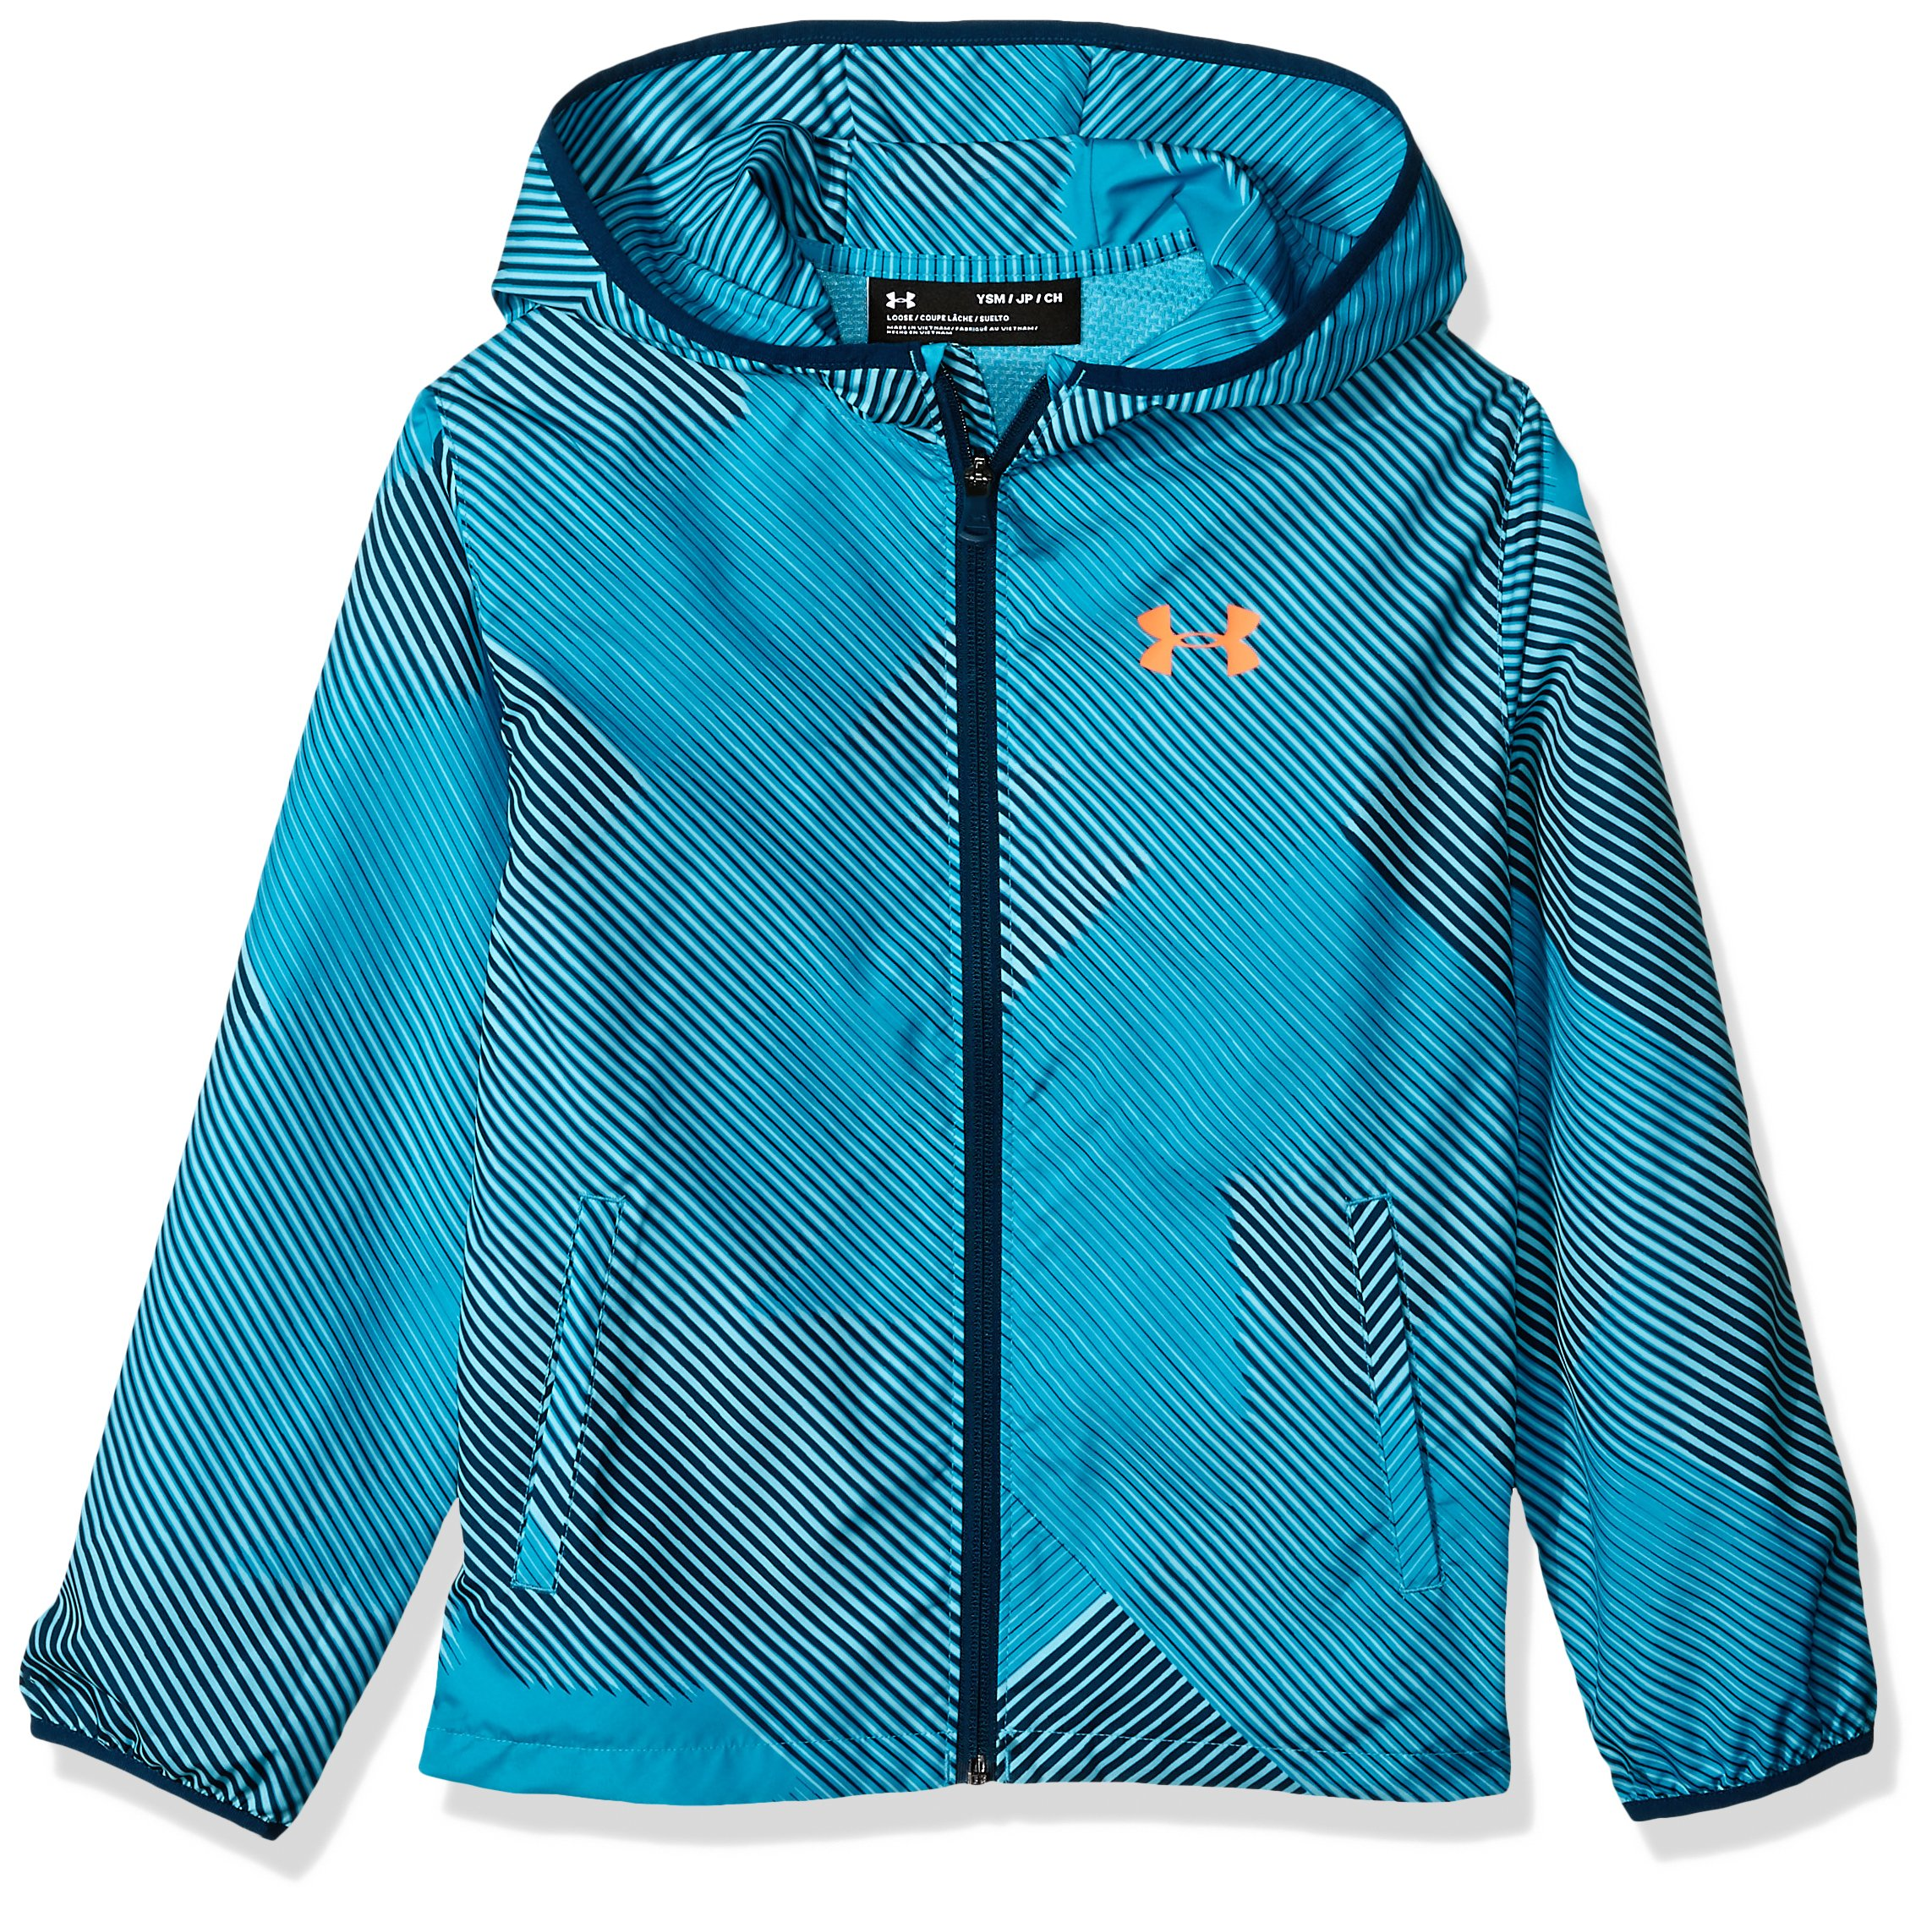 Under Armour Boys' Sackpack Jacket, Techno Teal (489)/Magma Orange, Youth Small